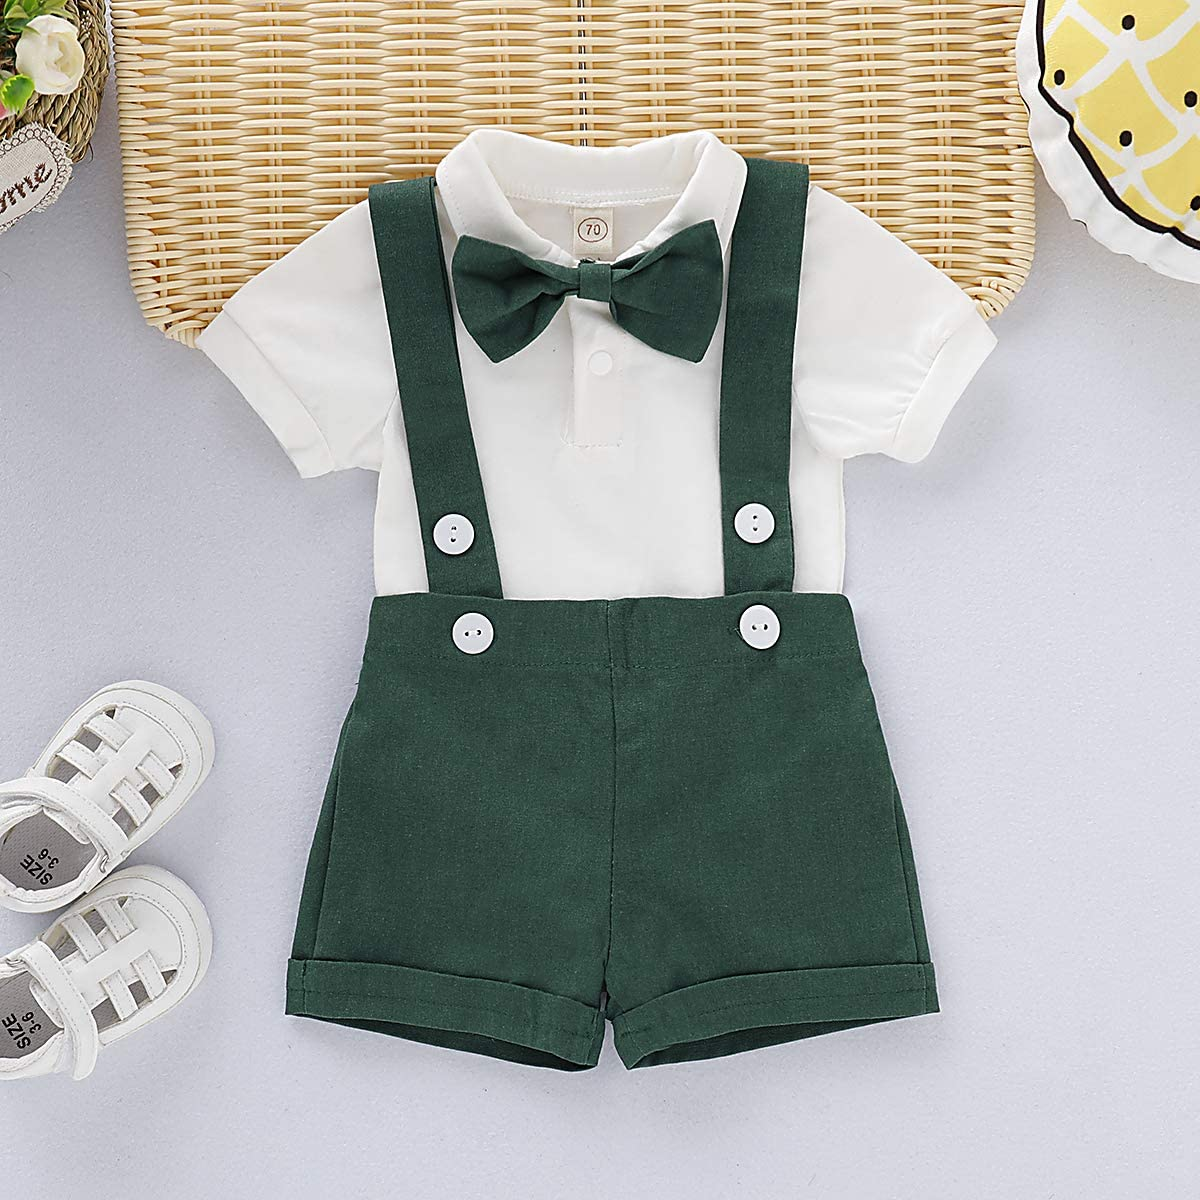 Baby Boy Short Sleeves Formal BowTie Romper Summer Tuxedo Outfit size 2